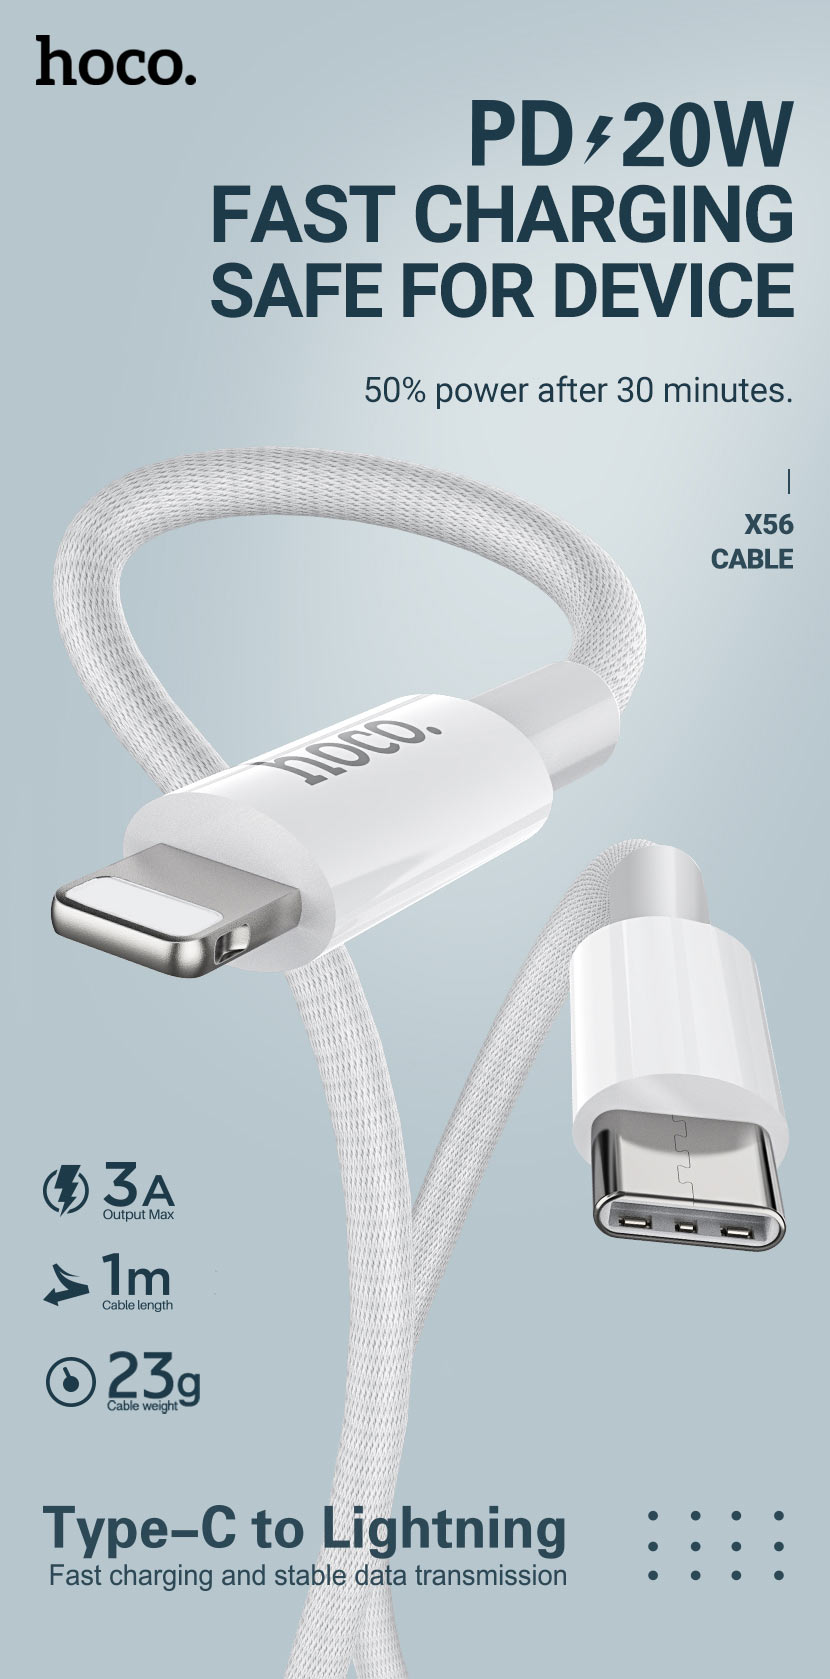 hoco news x56 new original pd charging data cable lightning en